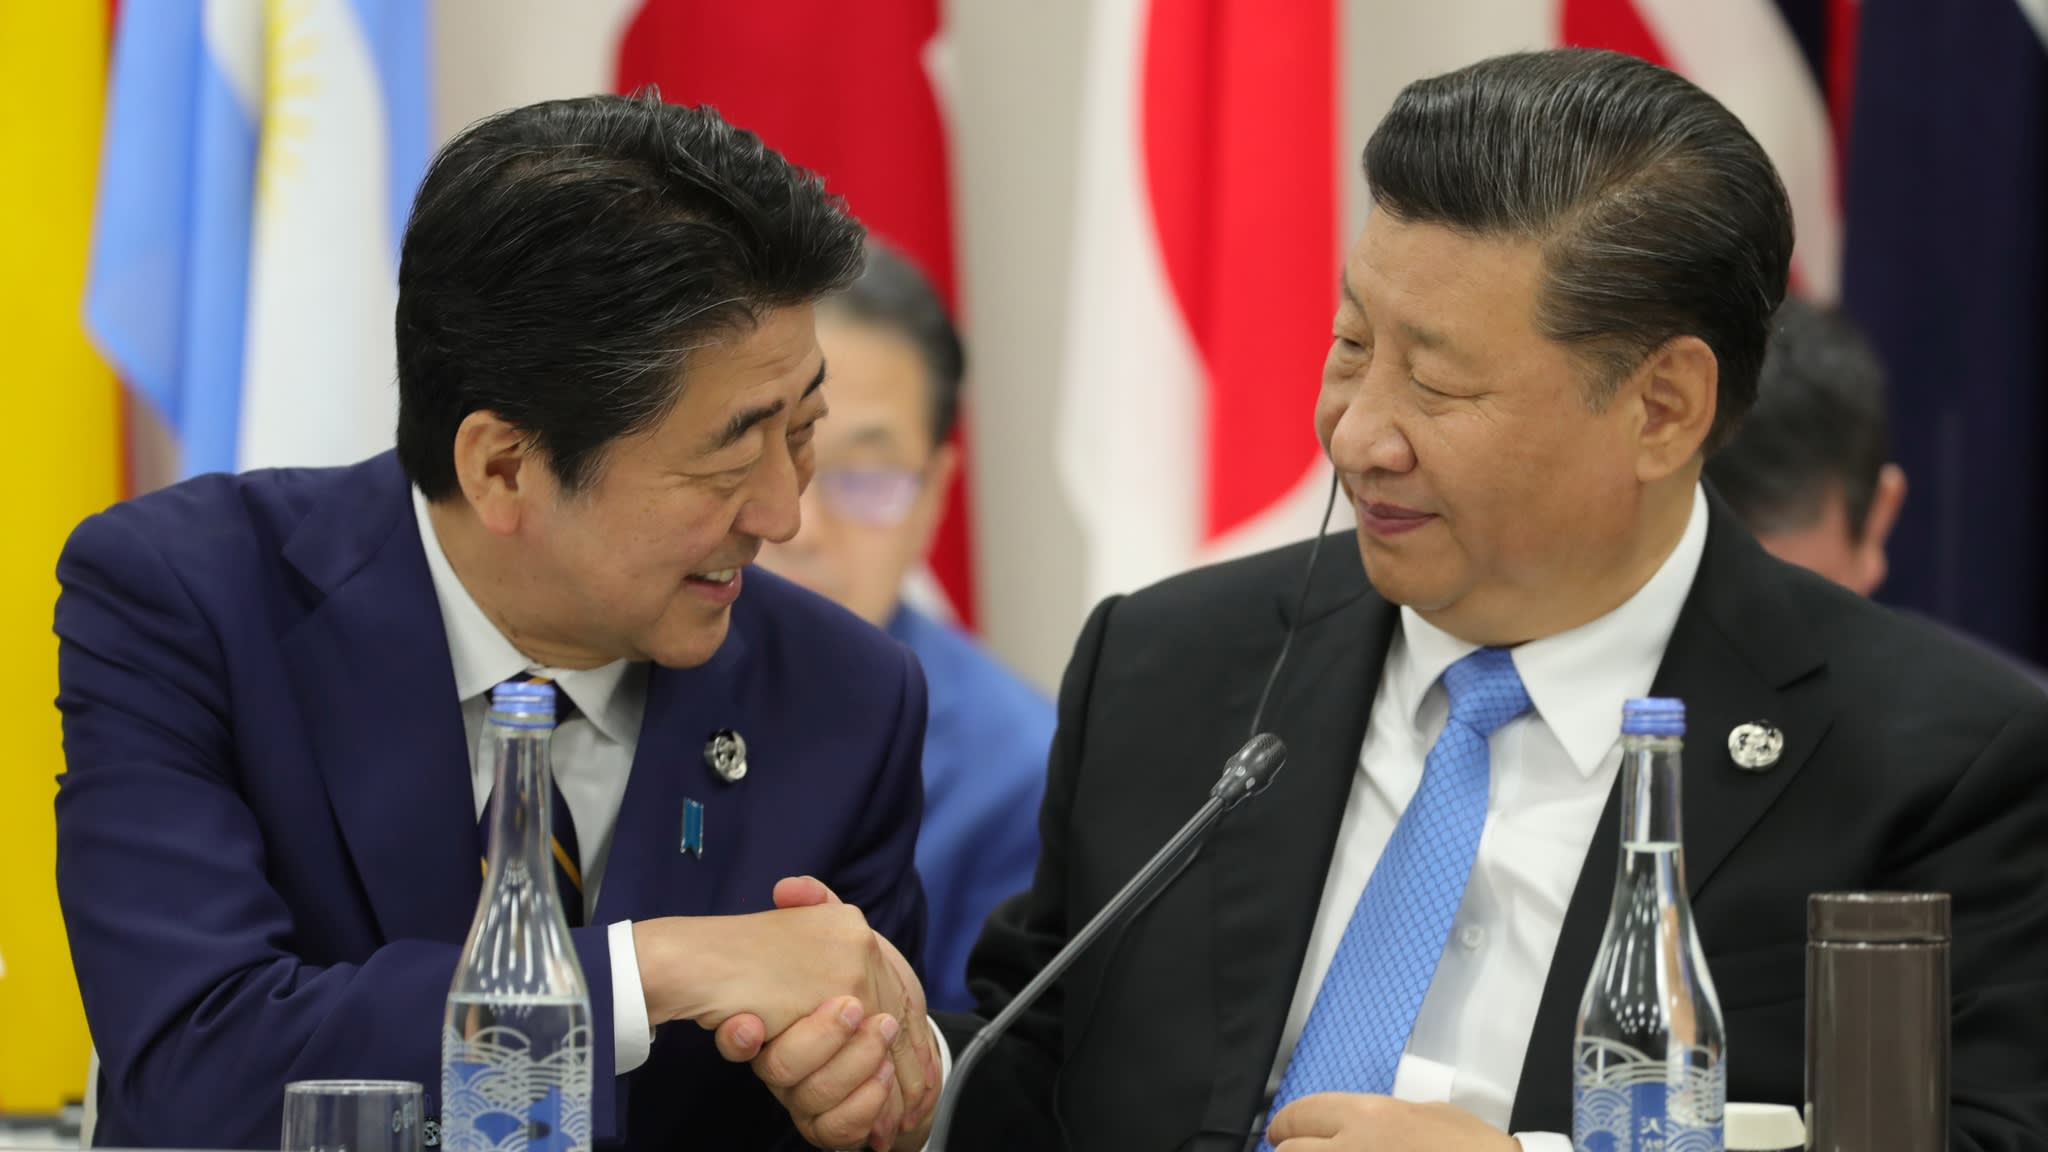 Japan S Ruling Party Torn Over Xi Jinping Invitation Nikkei Asia